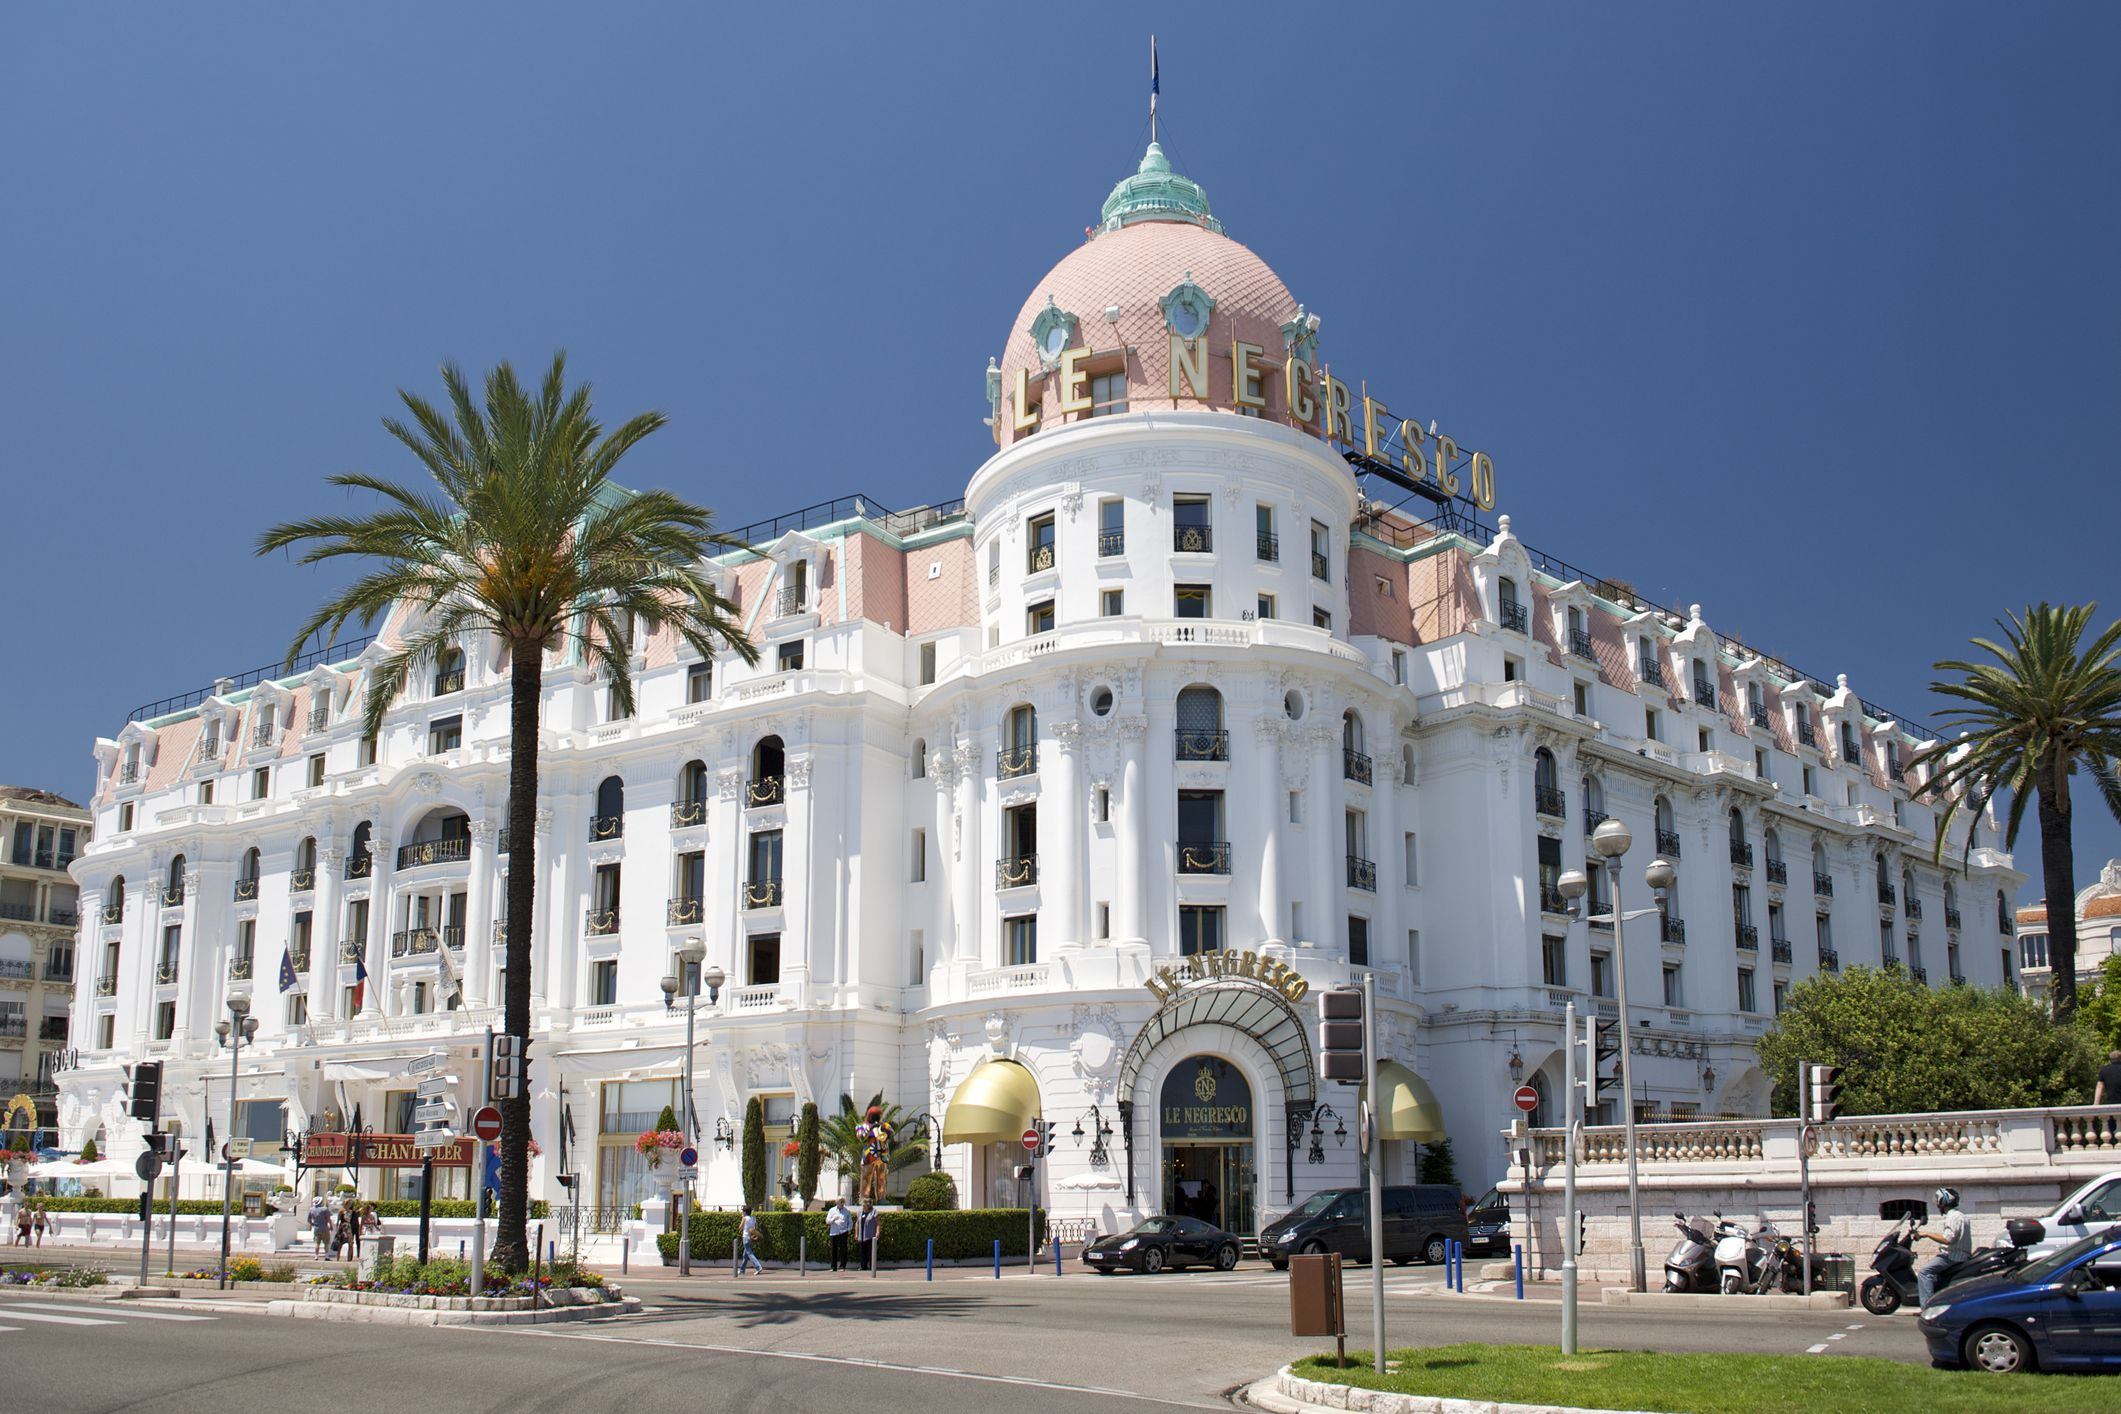 Hotels in nice ranging from affordable to luxury for Luxury hotels in nice